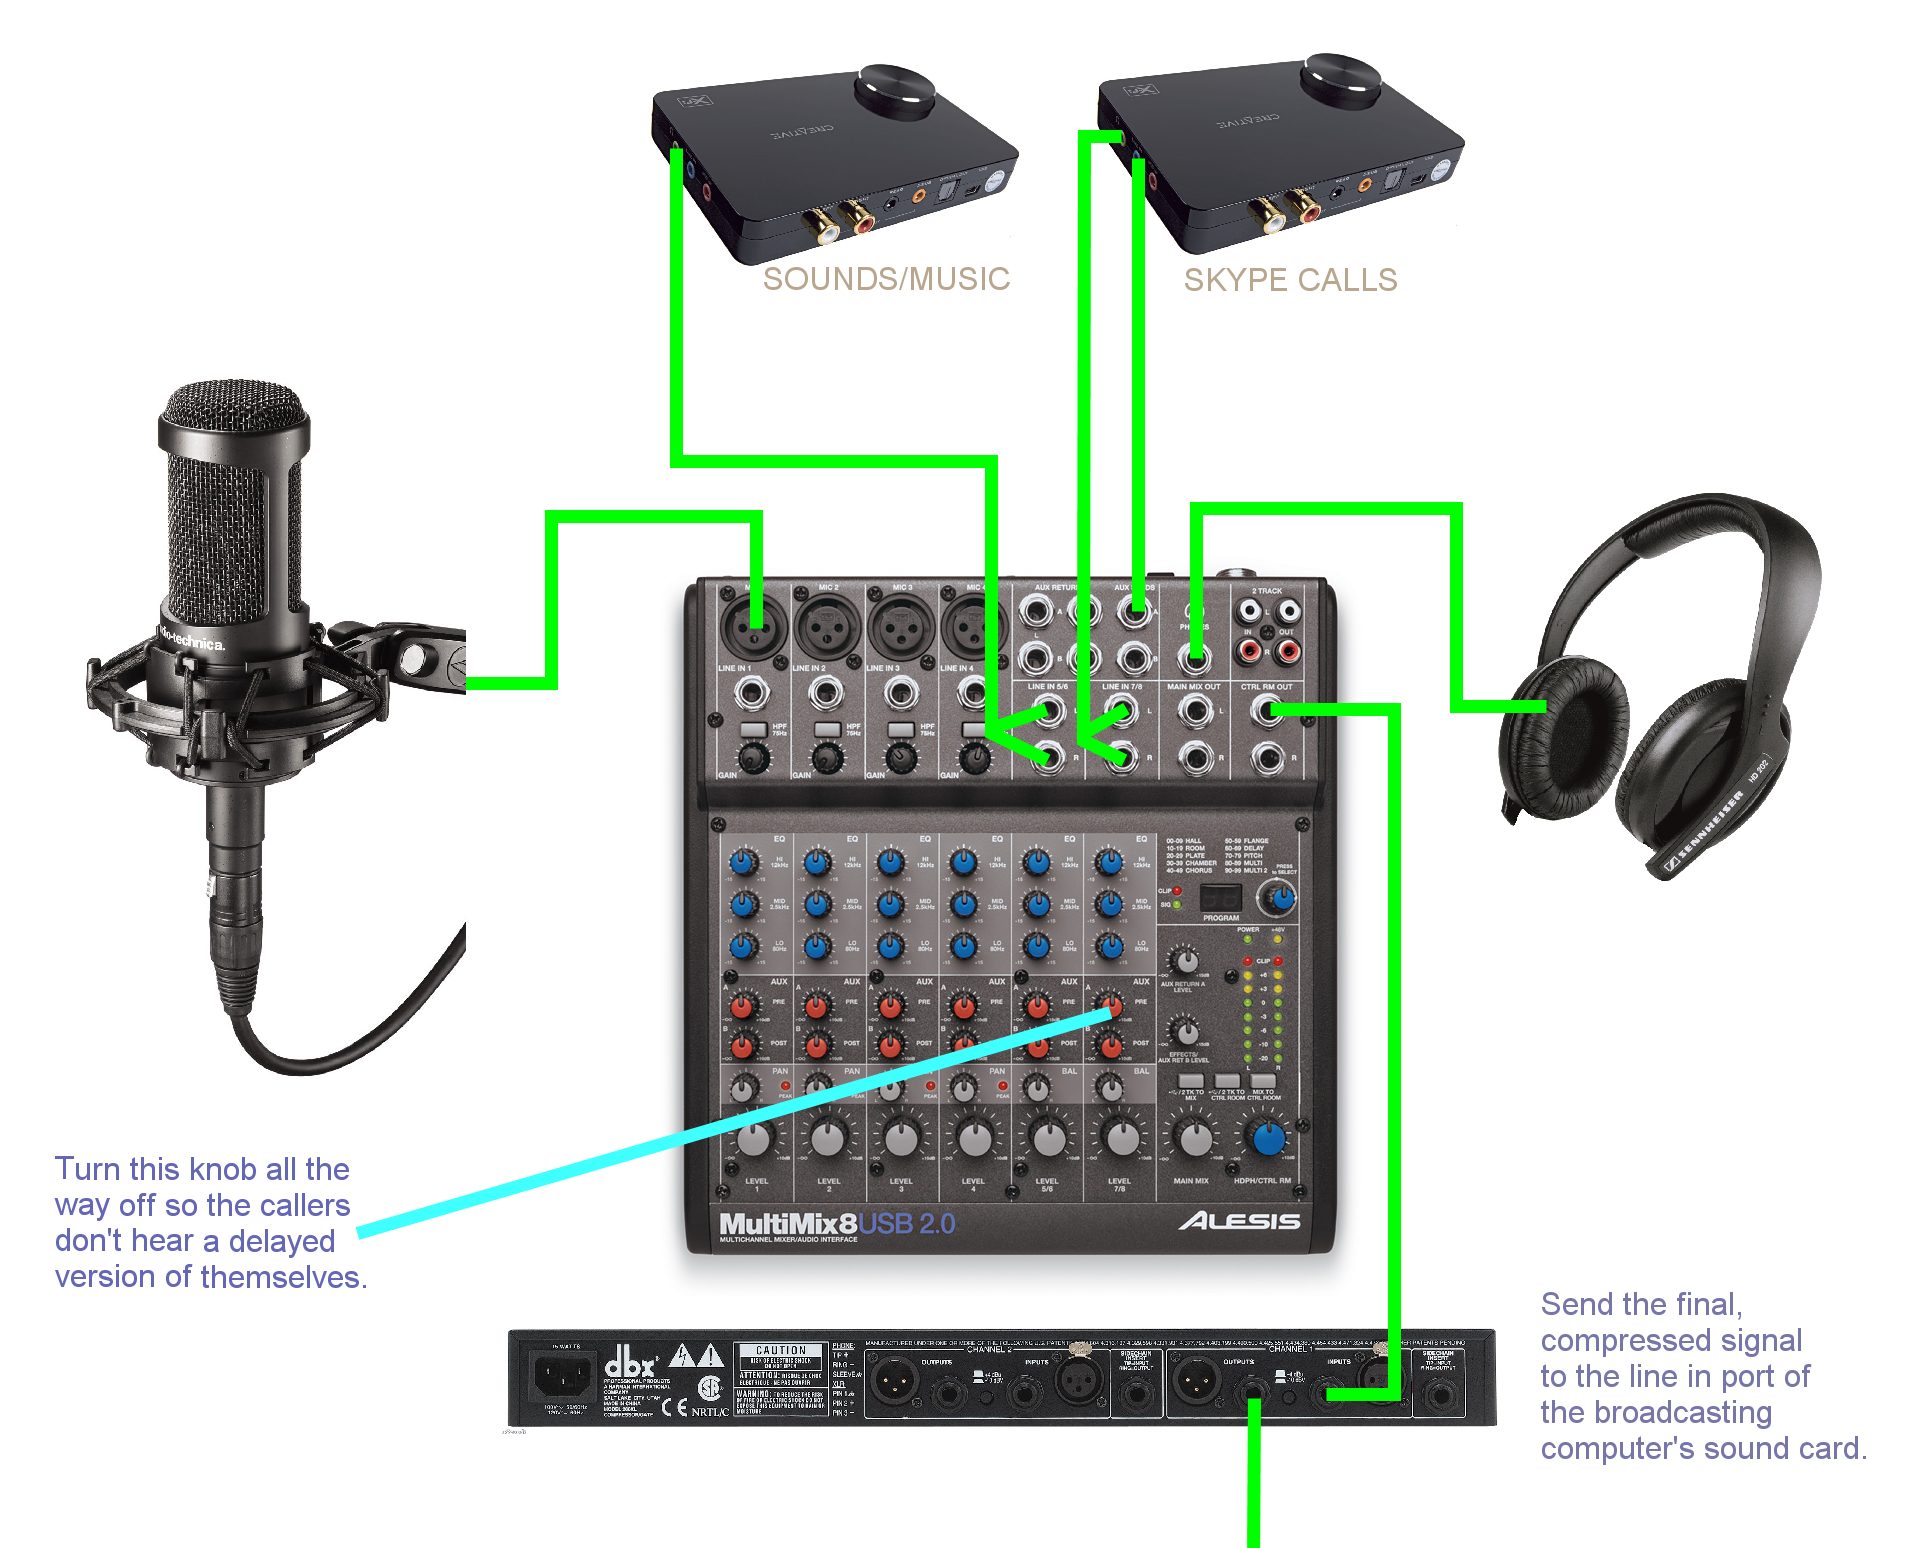 Basic Dj Setup Diagram Giftsforsubs Speakers Is This A Correct Config For Setupclesetup2jpg The Gallery